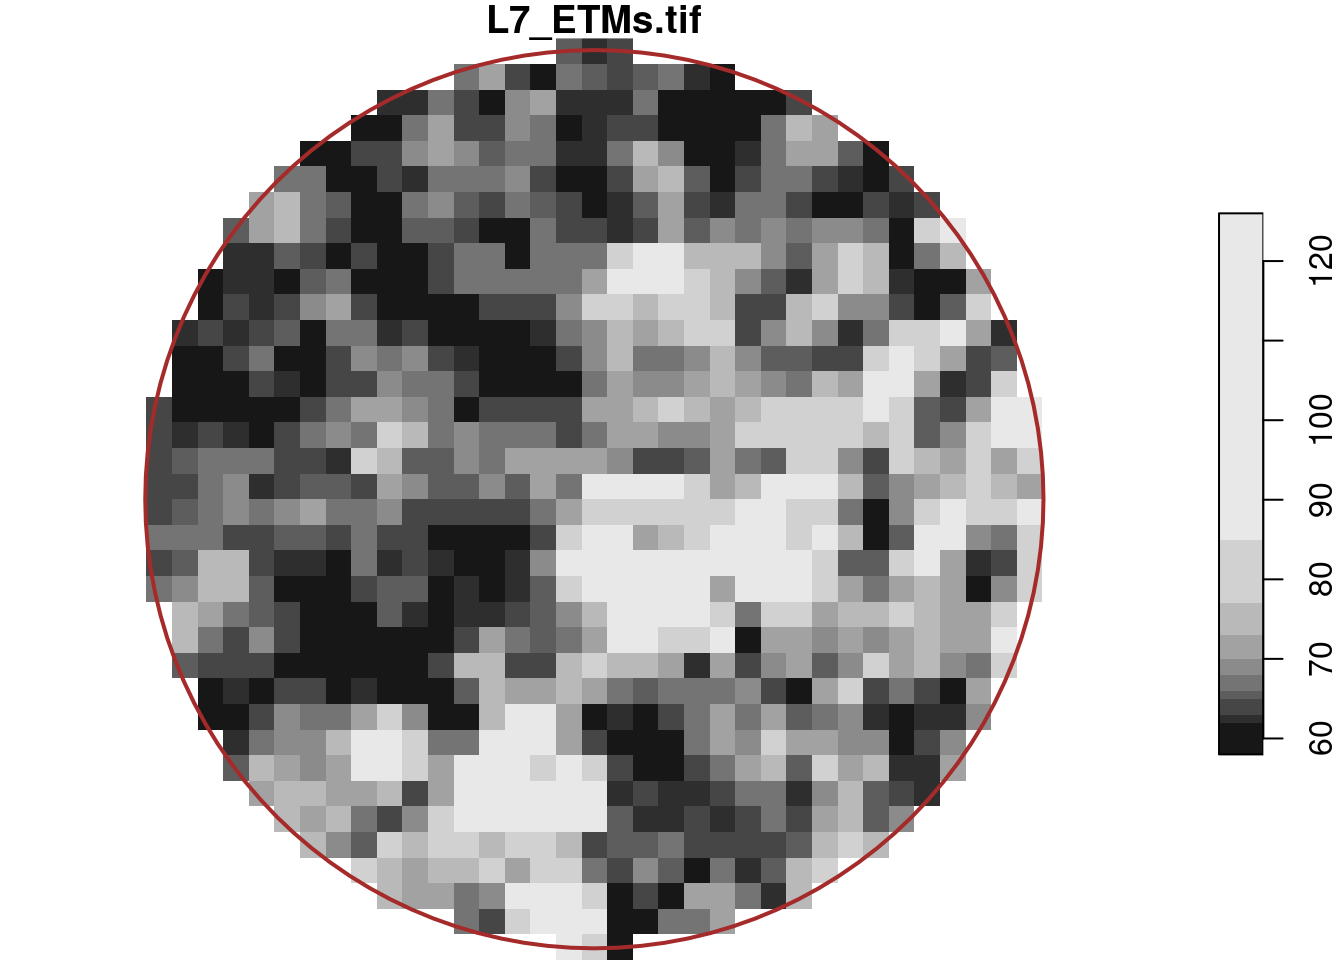 circular center region of the Landsat 7 scene (band 1)